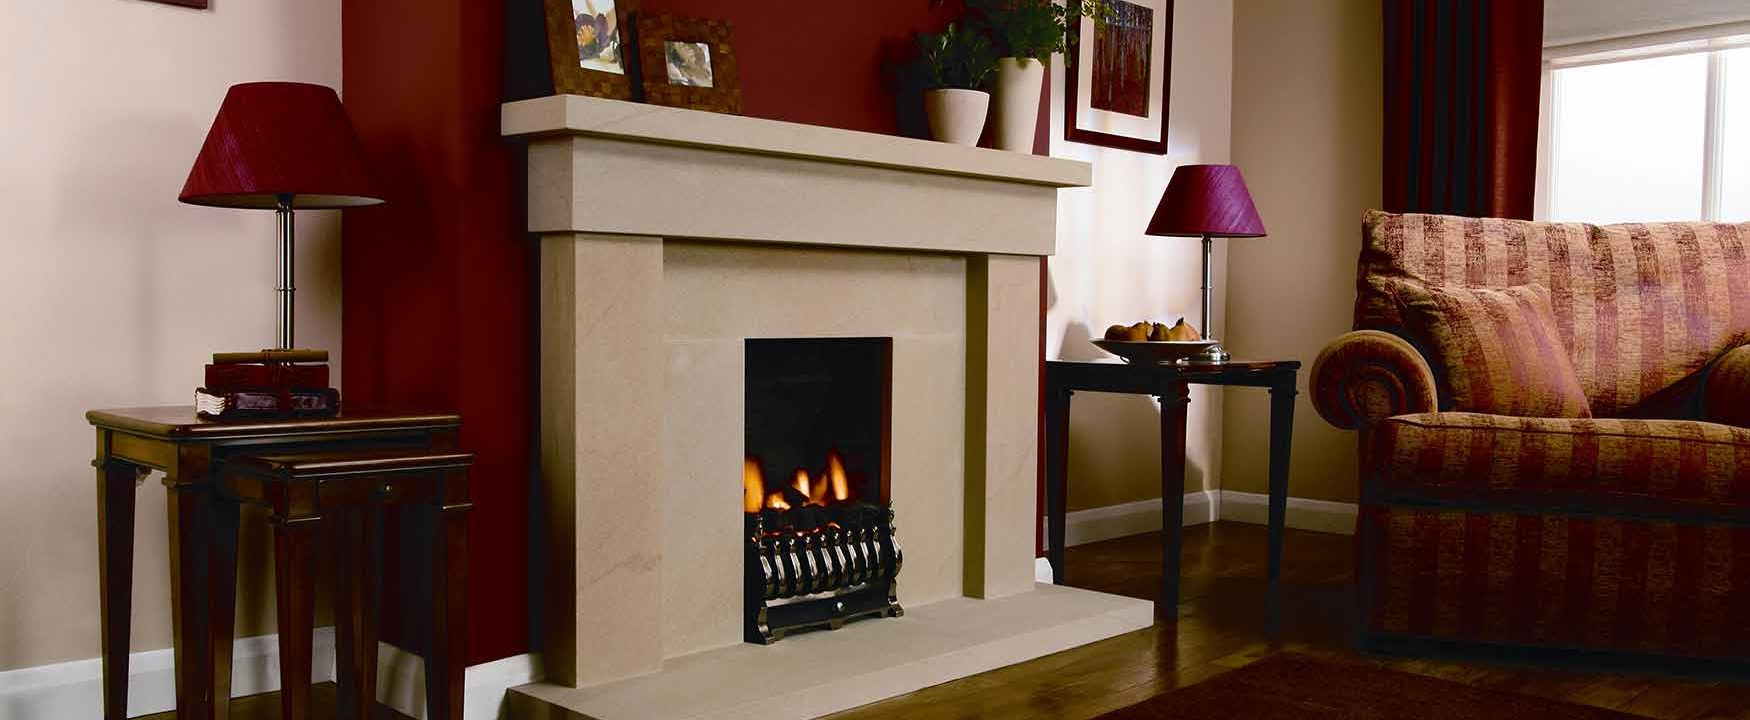 Large Devon Fireplace!